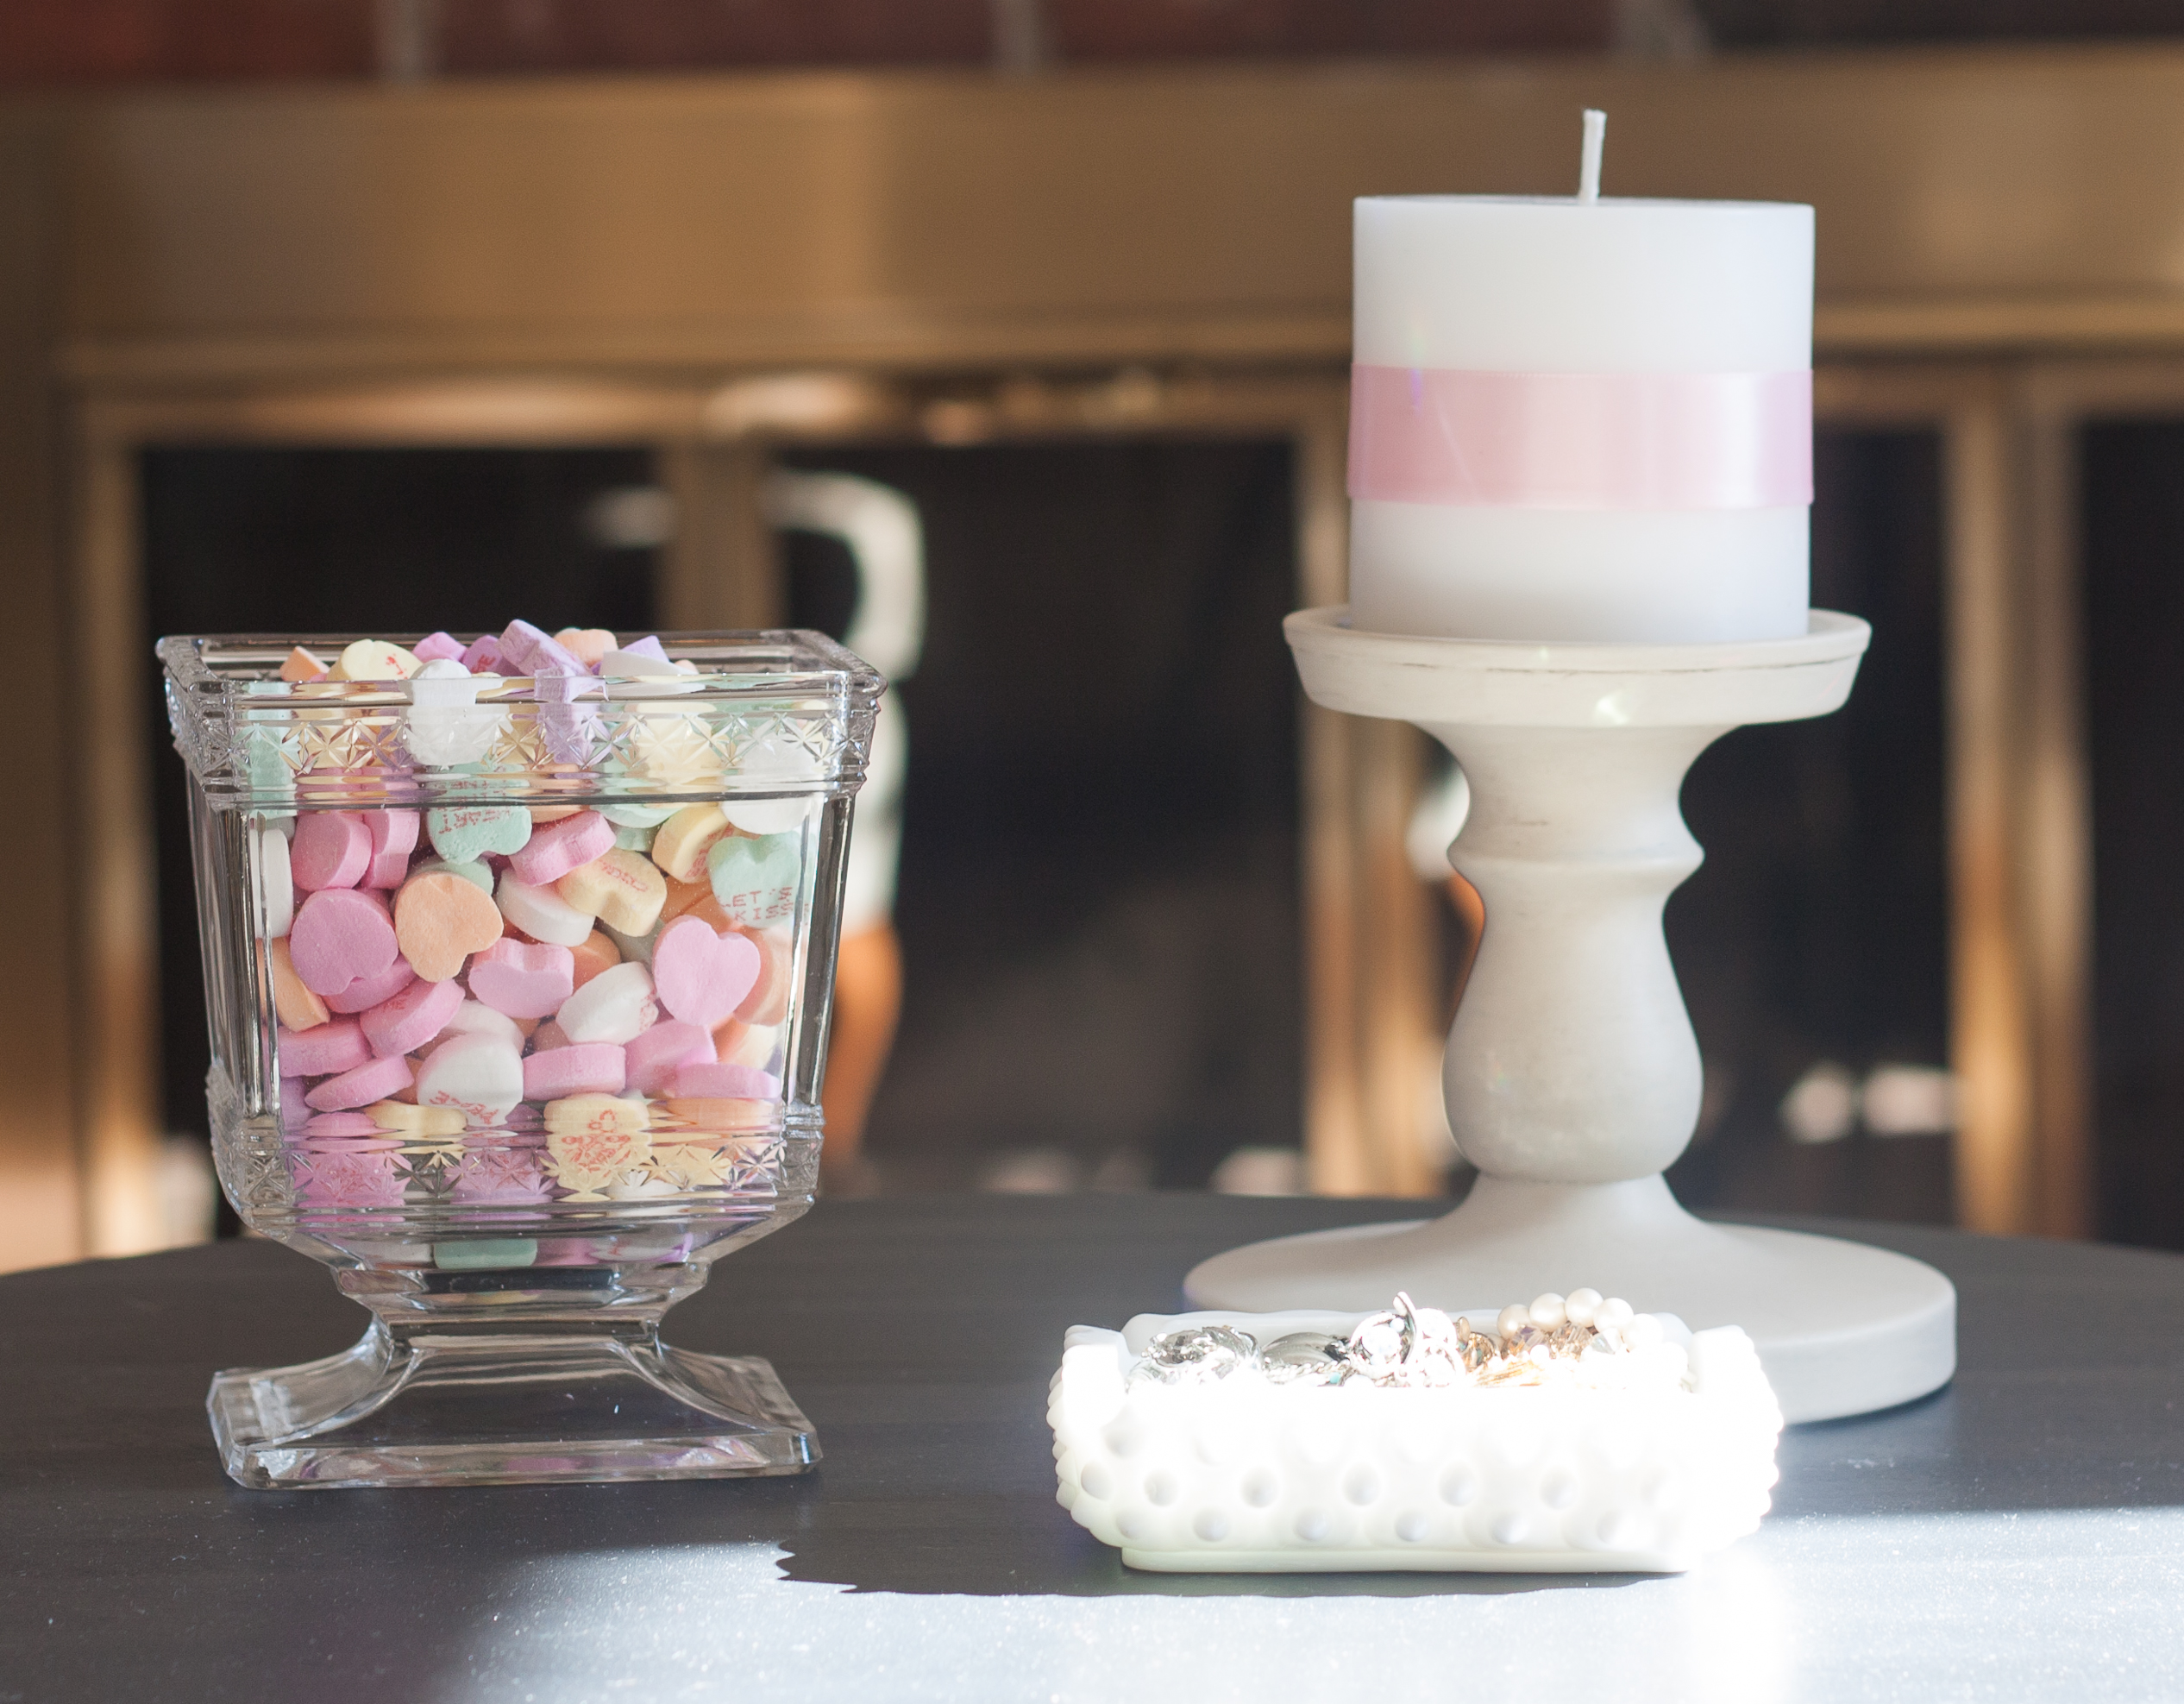 Valentine's Day Vignette with Conversation Hearts in an antique glass vase; vintage costume jewelry in a milk glass ashtray; and a candle made romantic with the addition of pink ribbon. #valentinesday #valentinesdayvignette #valentinesdaydecor #conversationhearts #milkglass